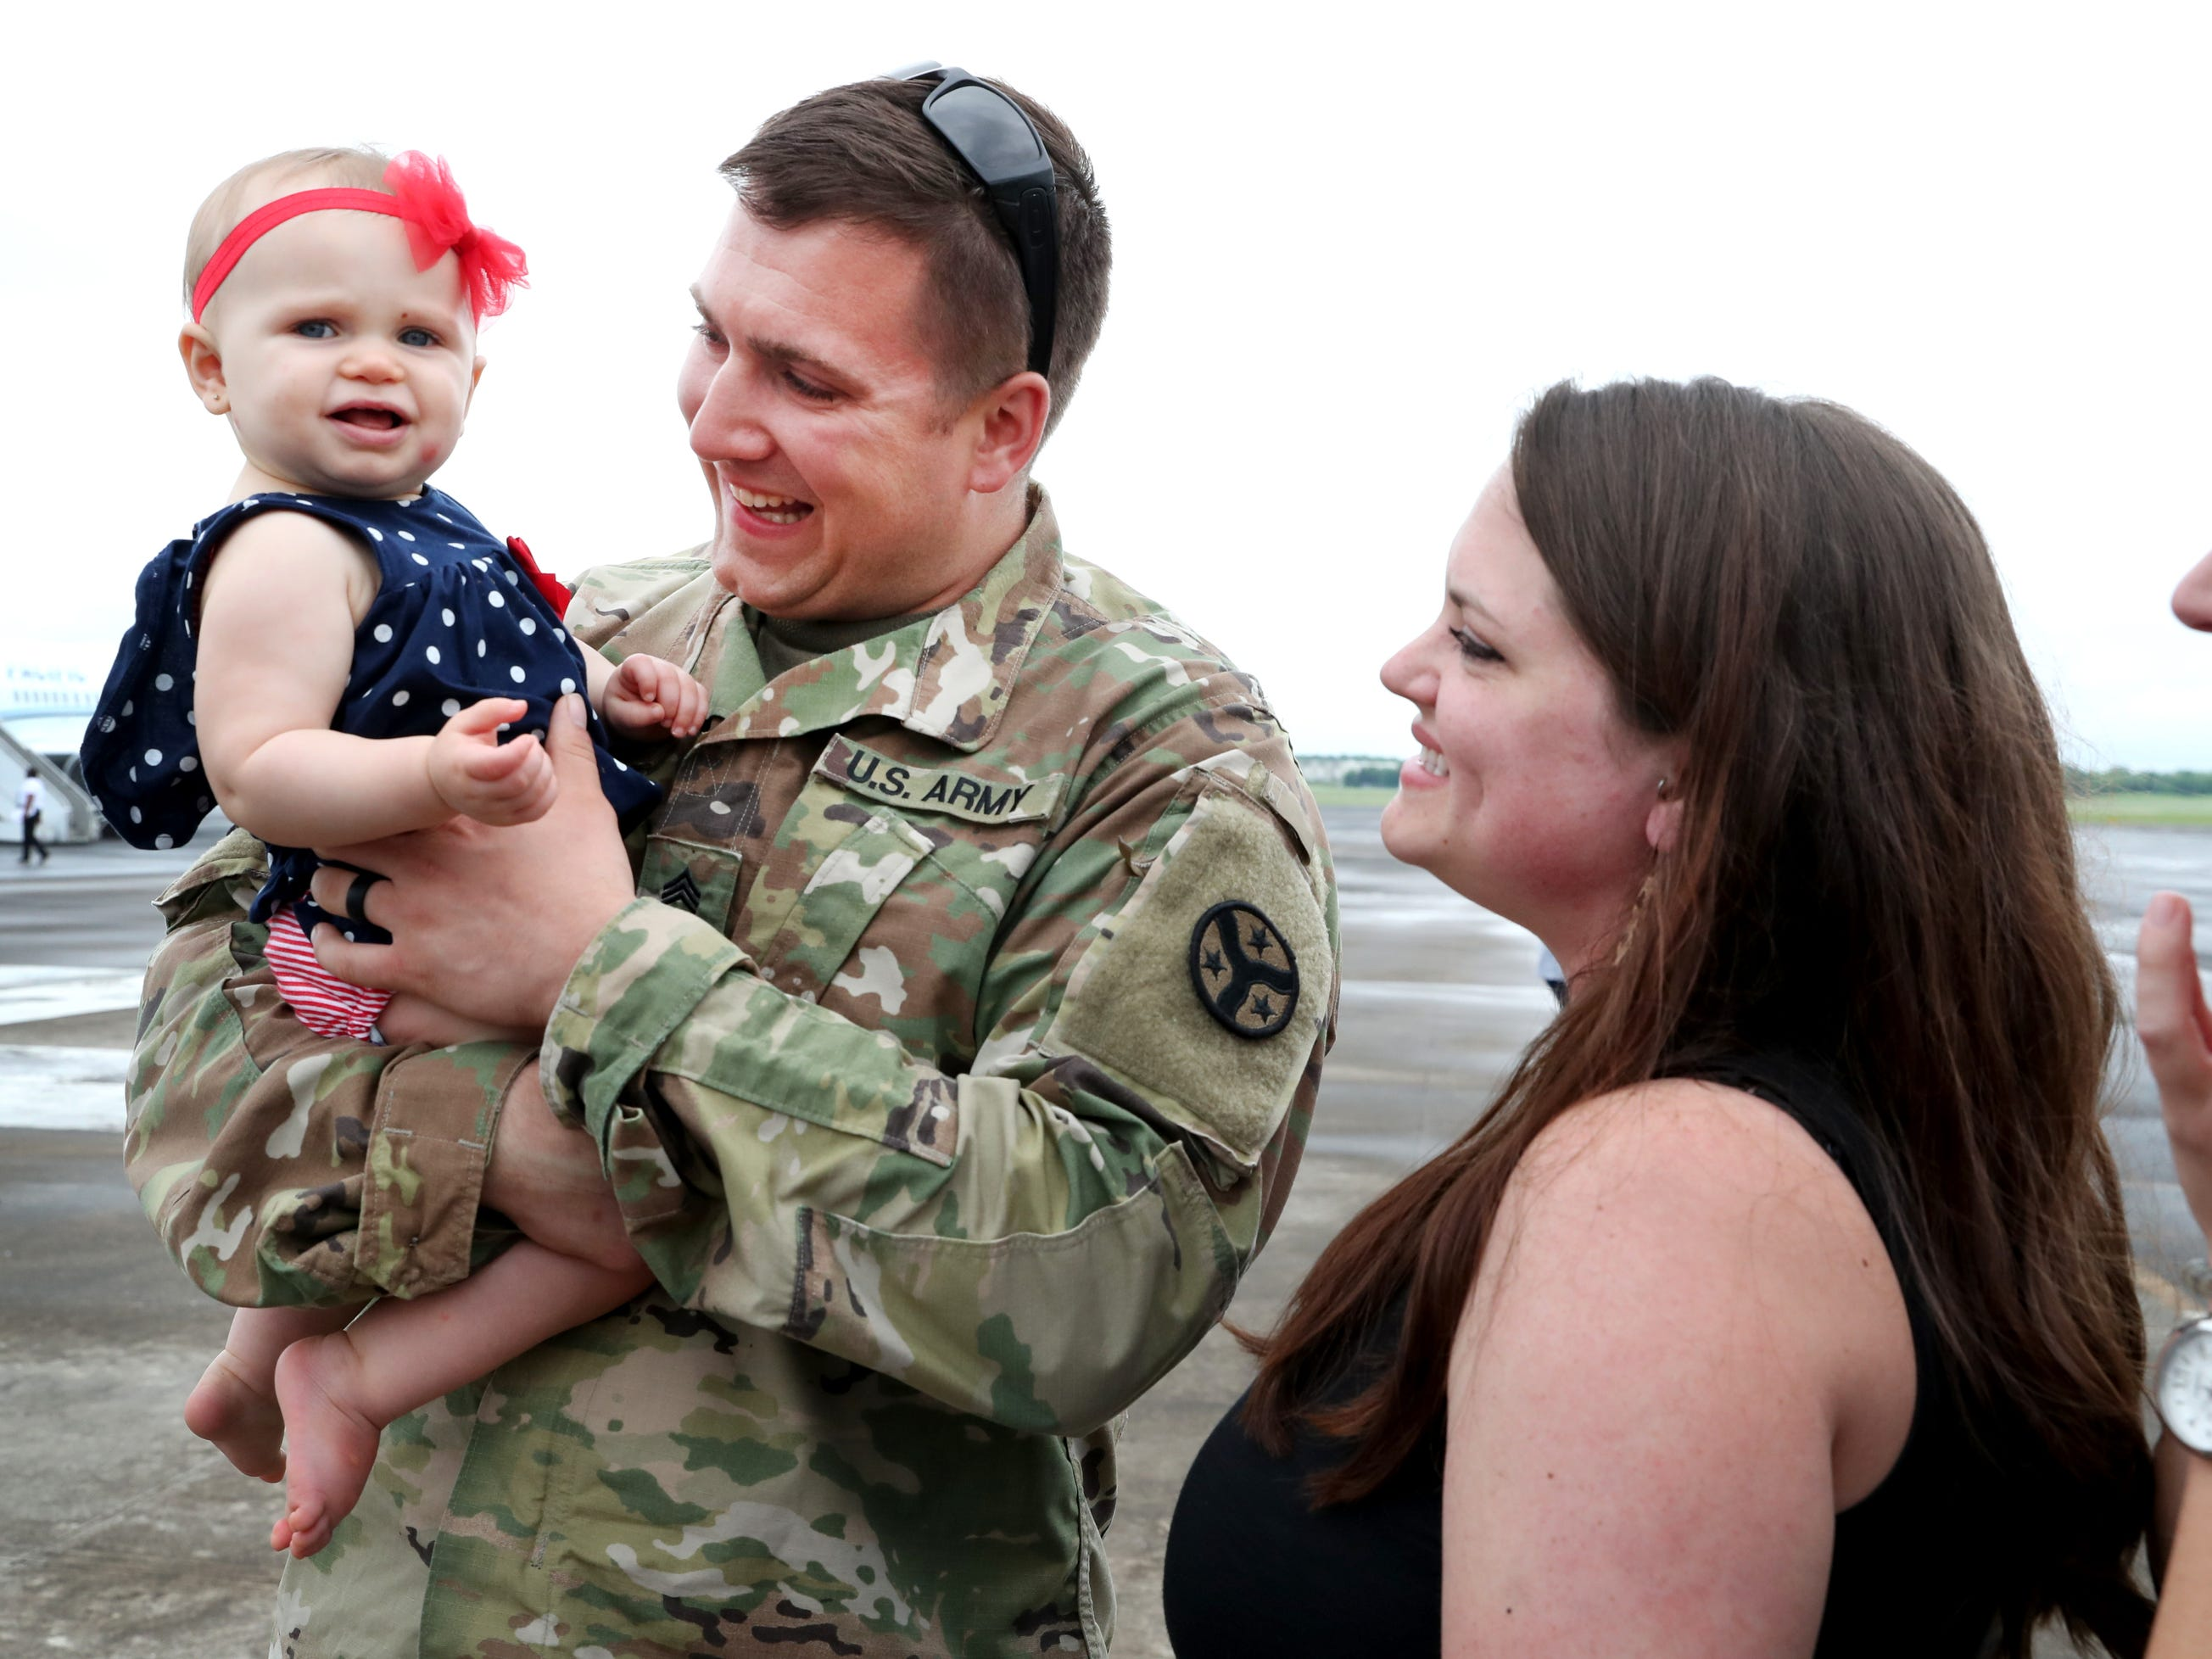 Molly Baker watches as her husband Sgt. Jake Baker with the 278th ACR, holds their 1 year-old daughter Emelyn Baker after he got off a plane, at the Volunteer Training Site in Smyrna, from a 9 month overseas deployment on Thursday, May 9, 2019.